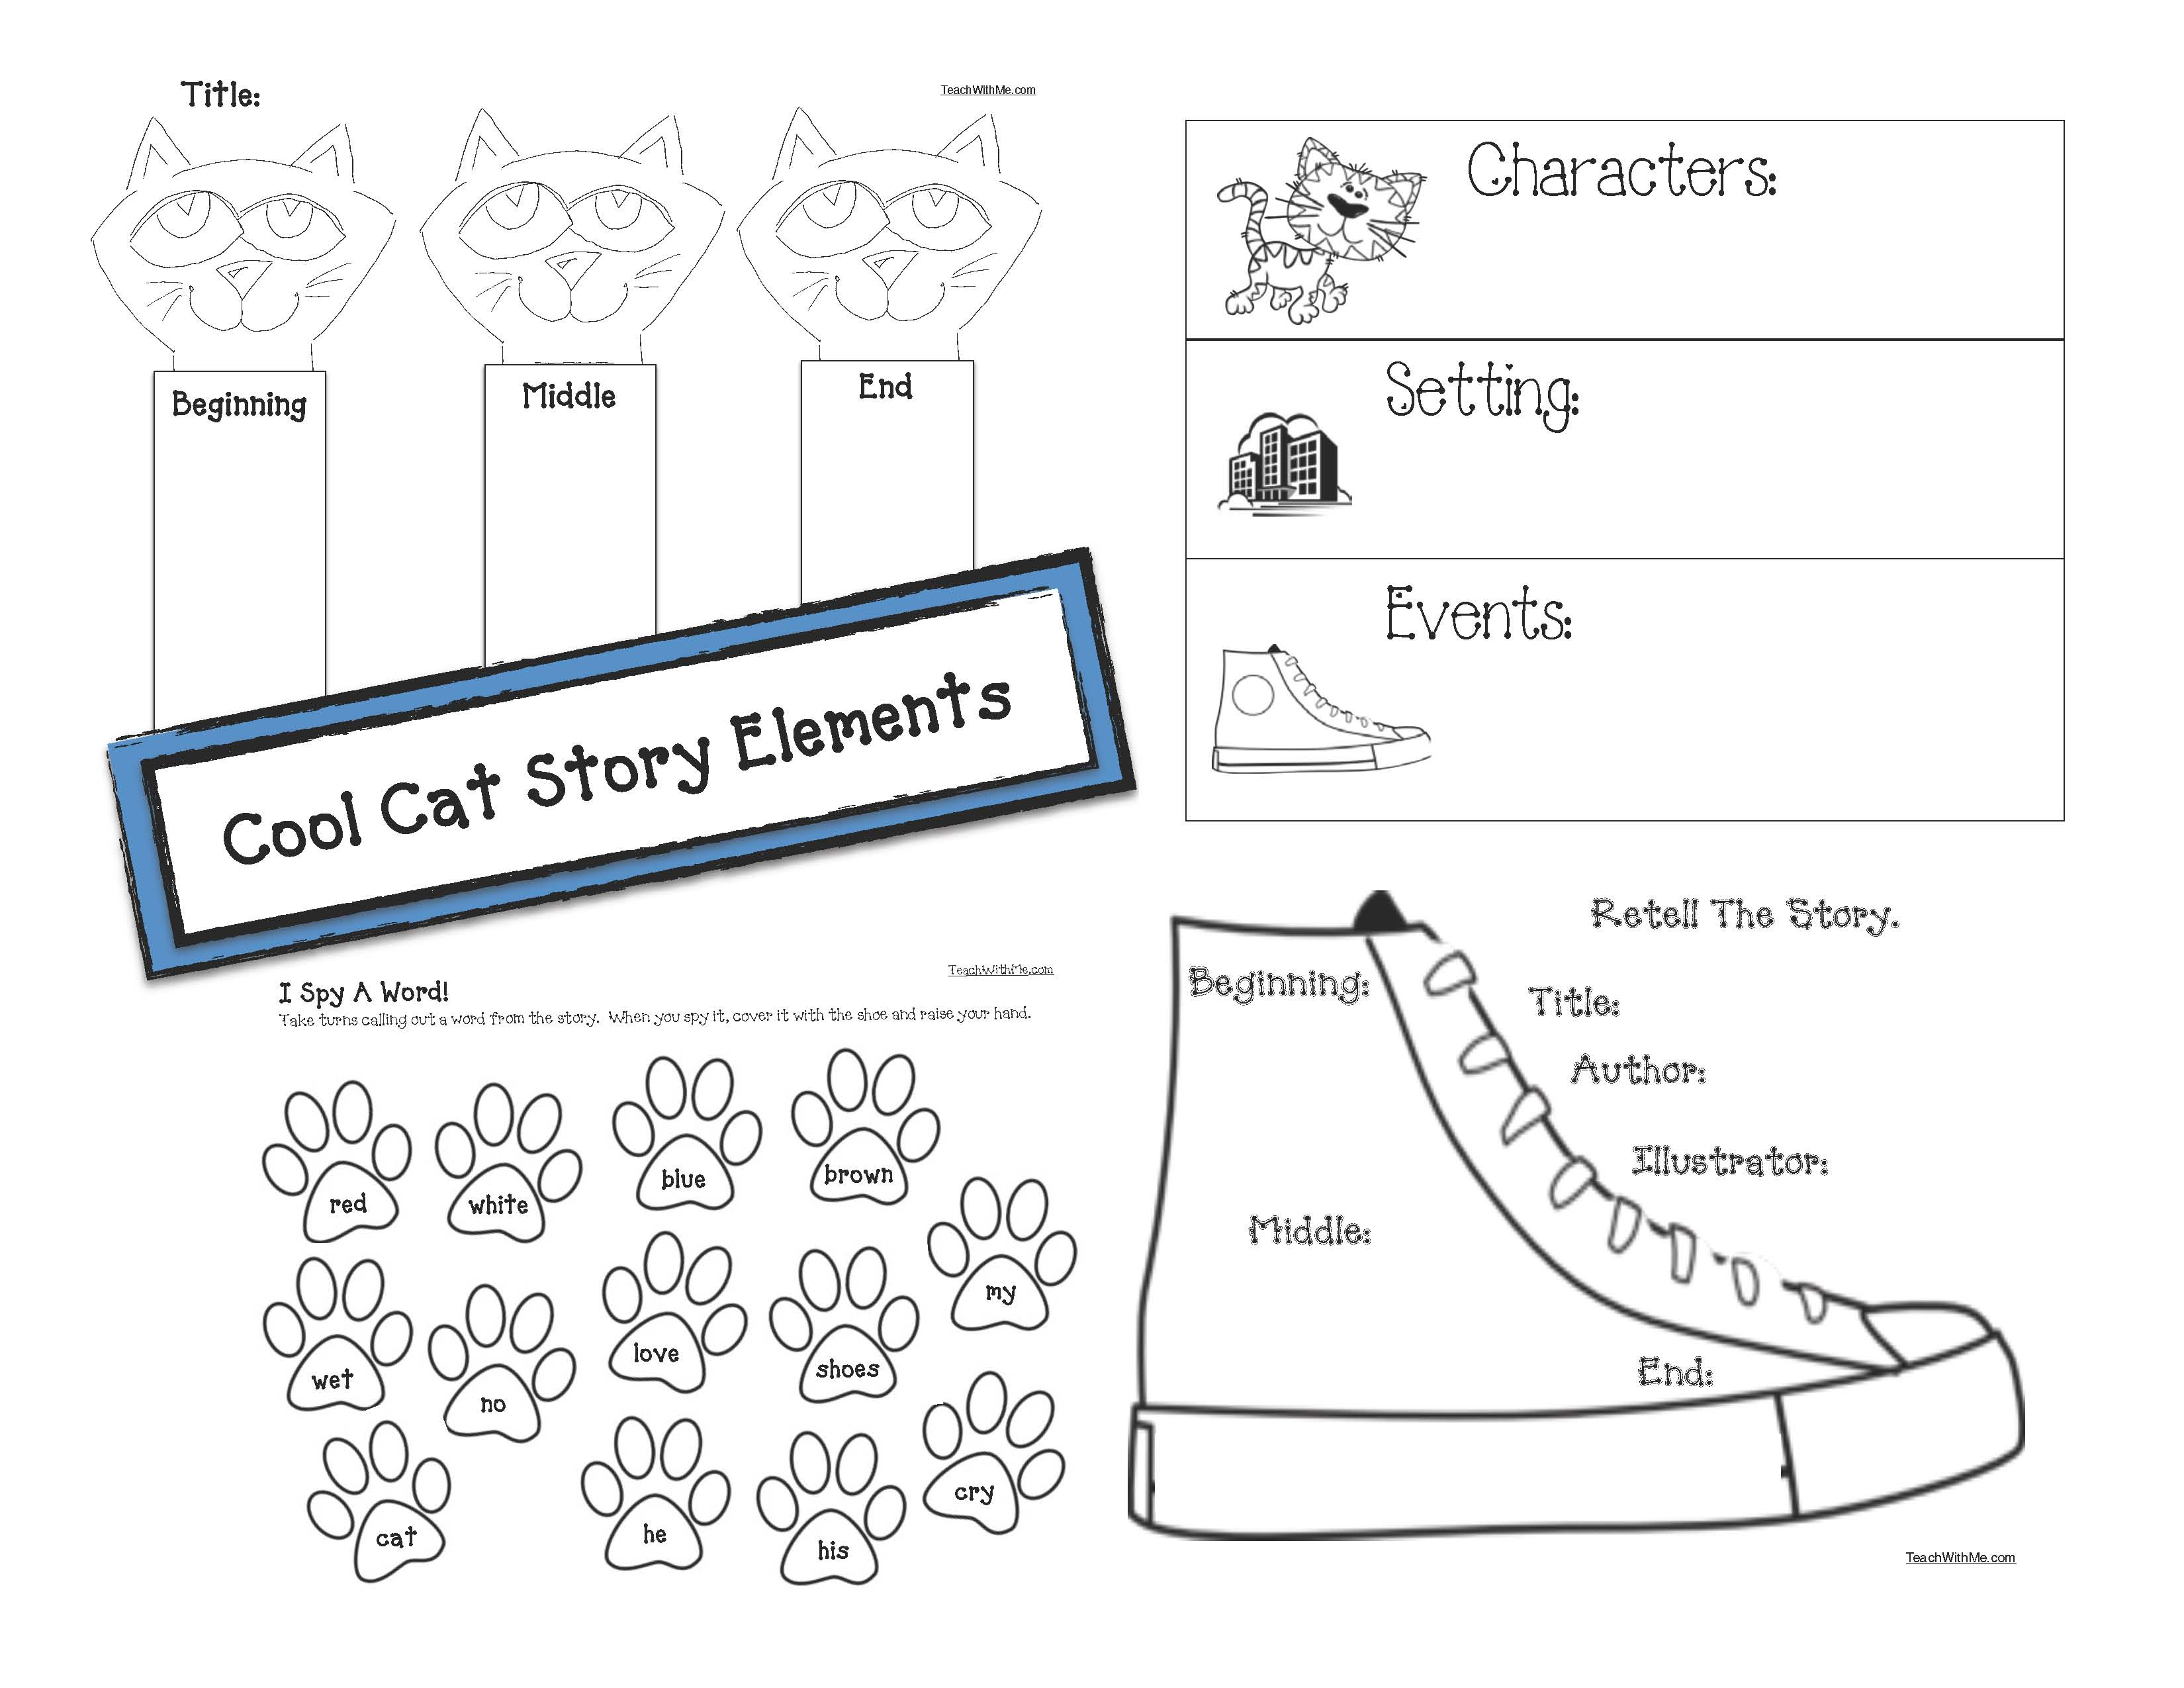 pete the cat activities, story elements for pete the cat, story elements activities, graphic organizers, pete the cat crafts, cat crafts, retelling a story activities, sequencing pete the cat, color activities, color word activities, graphing shoe color, venn diagram templates, venn diagrams for pete the cat,